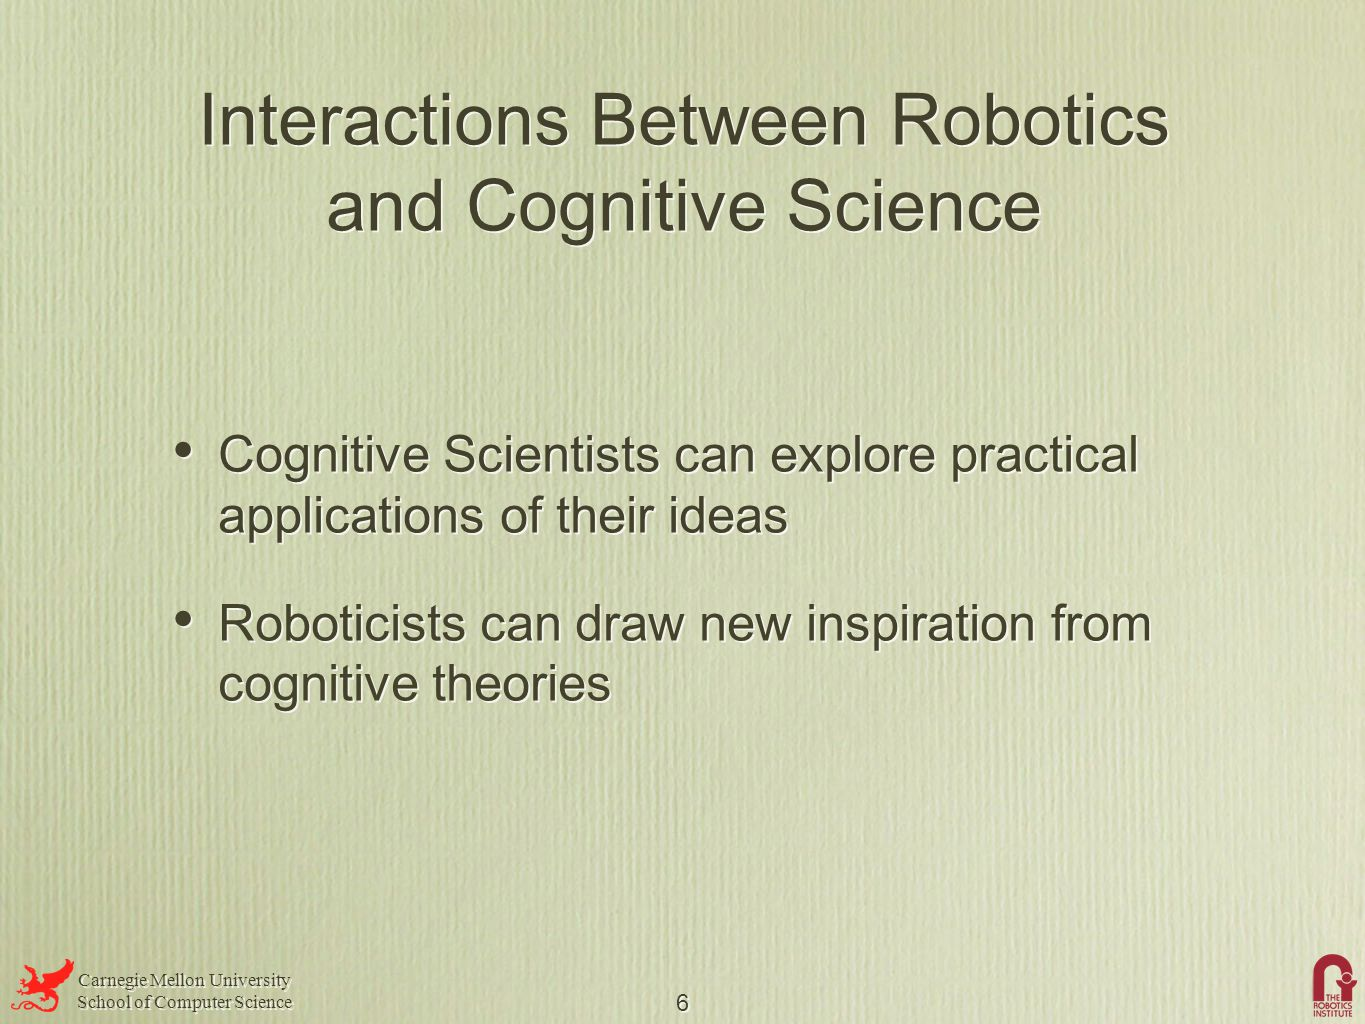 Carnegie Mellon University School of Computer Science Carnegie Mellon University School of Computer Science 6 Interactions Between Robotics and Cognitive Science Cognitive Scientists can explore practical applications of their ideas Roboticists can draw new inspiration from cognitive theories Cognitive Scientists can explore practical applications of their ideas Roboticists can draw new inspiration from cognitive theories